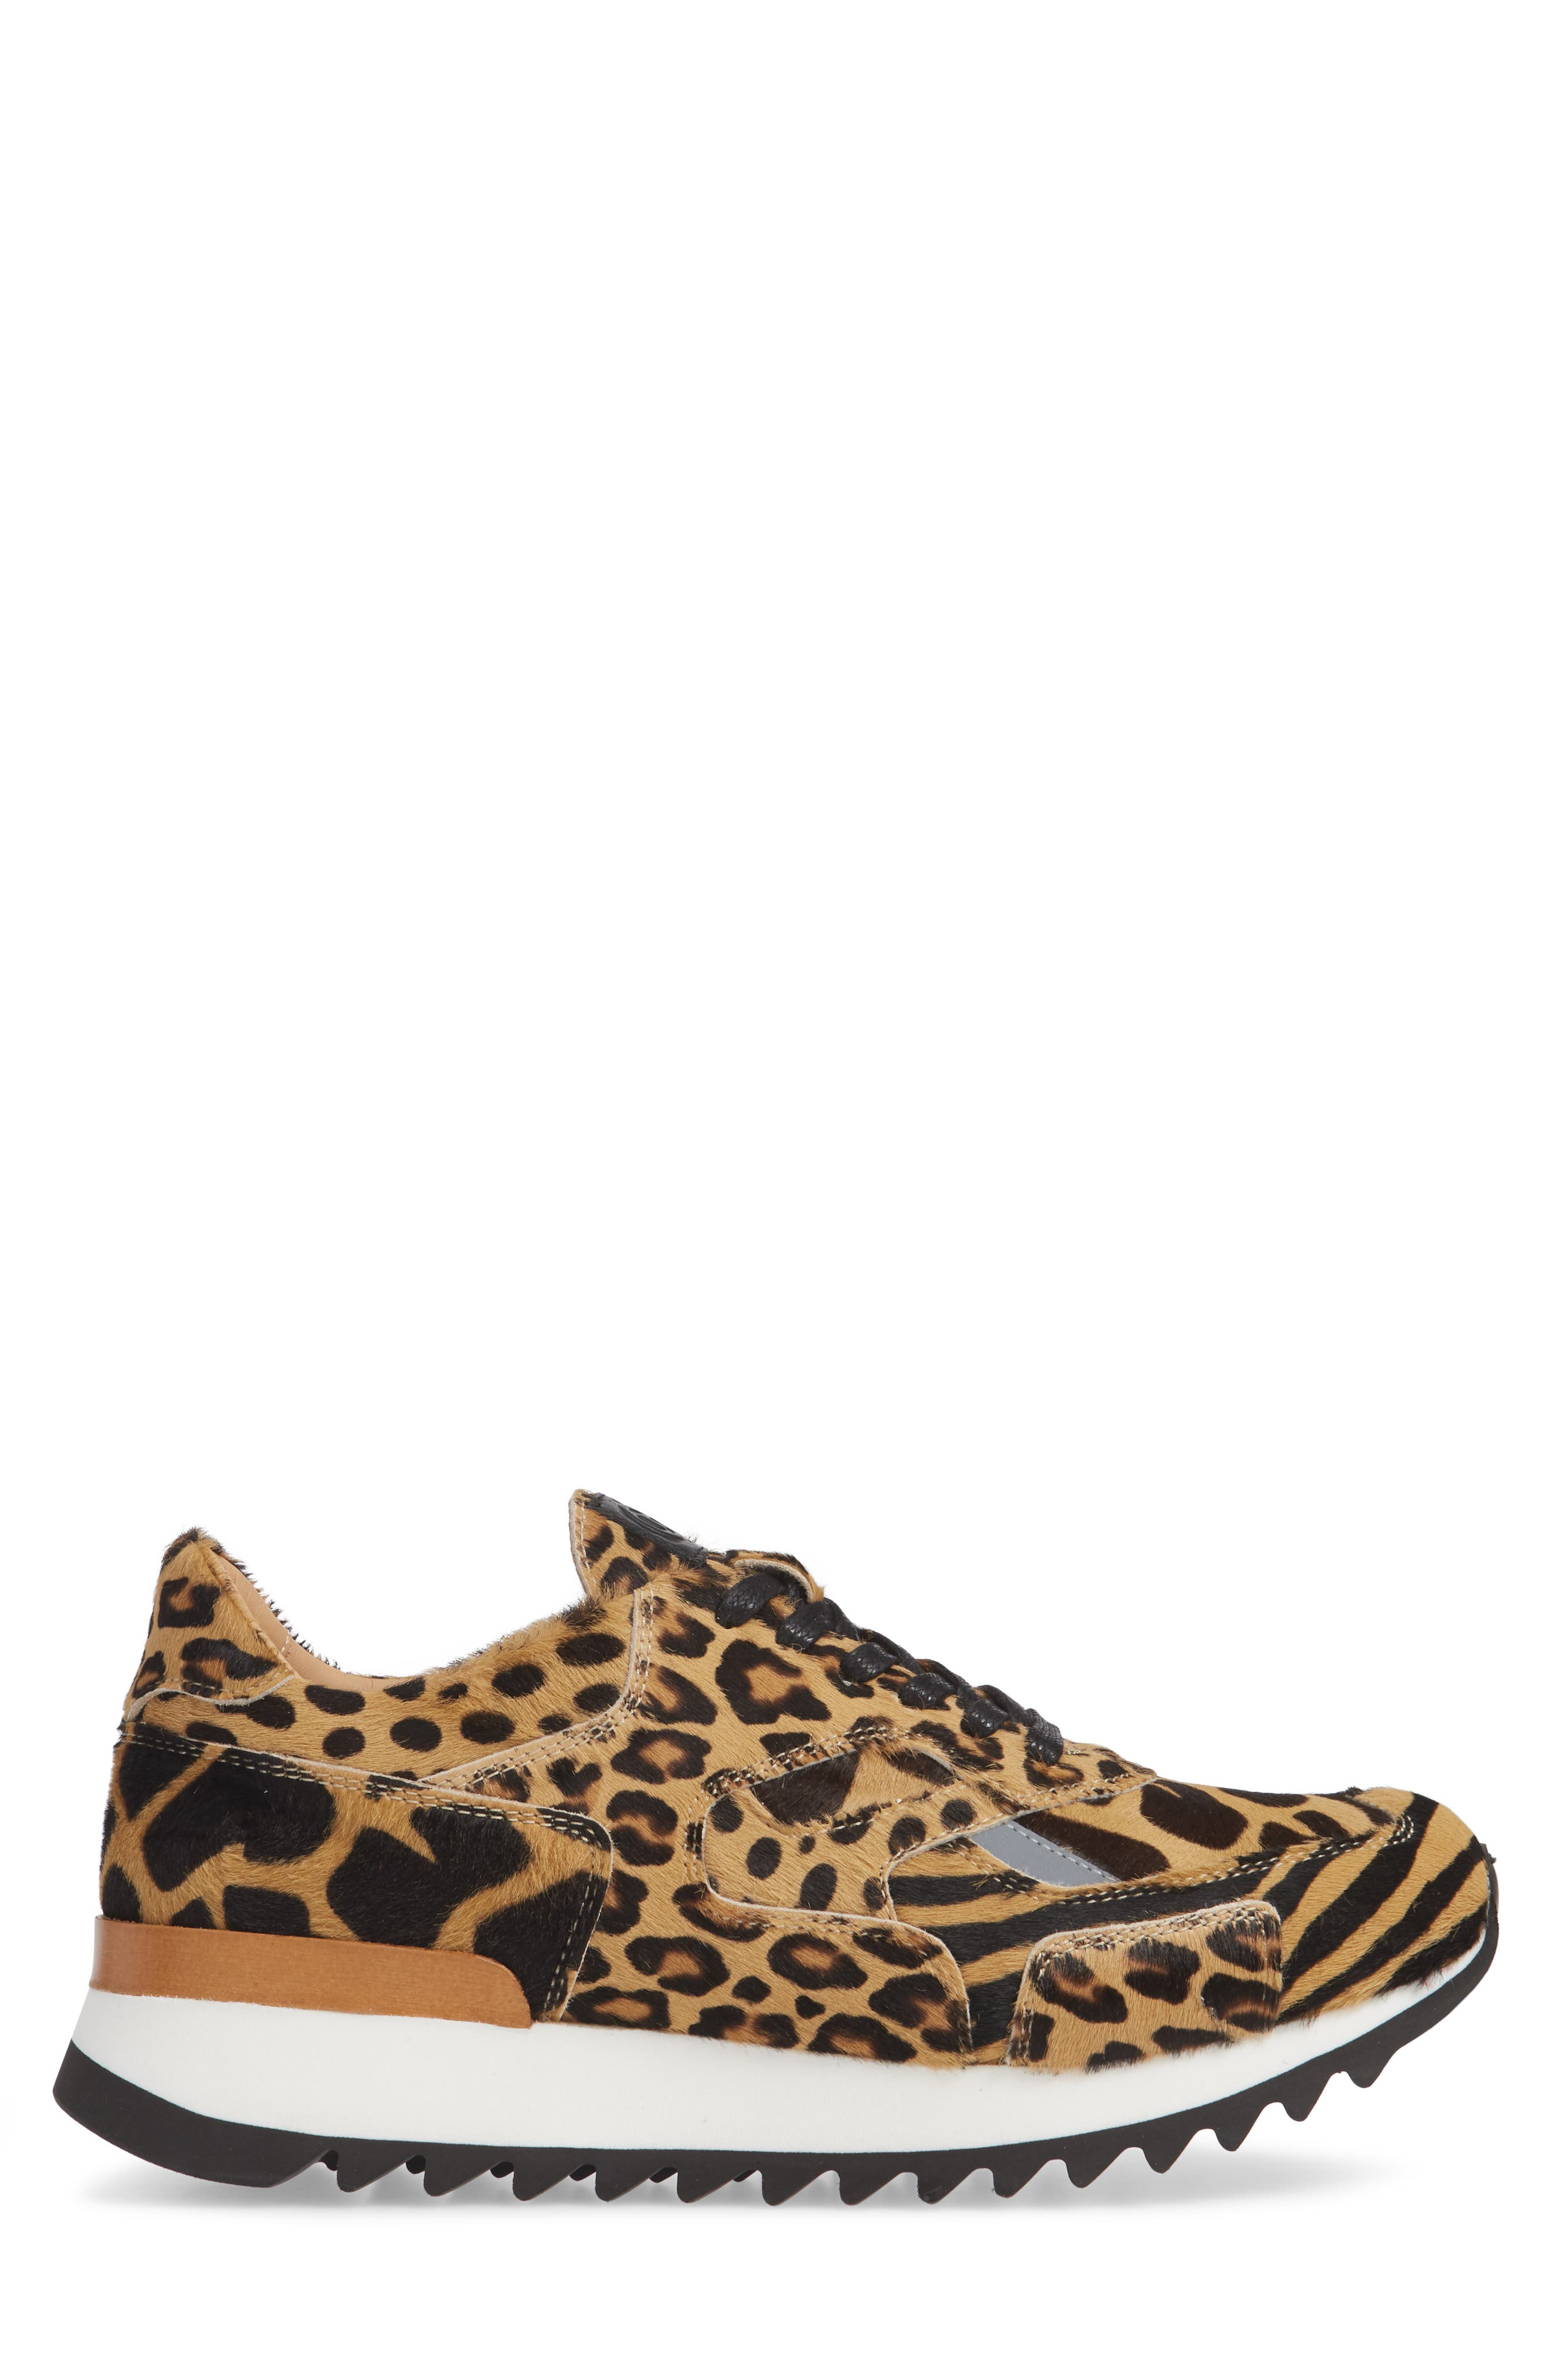 Nick Wooster x GREATS Pronto Genuine Calf Hair Sneaker,                             Alternate thumbnail 3, color,                             209